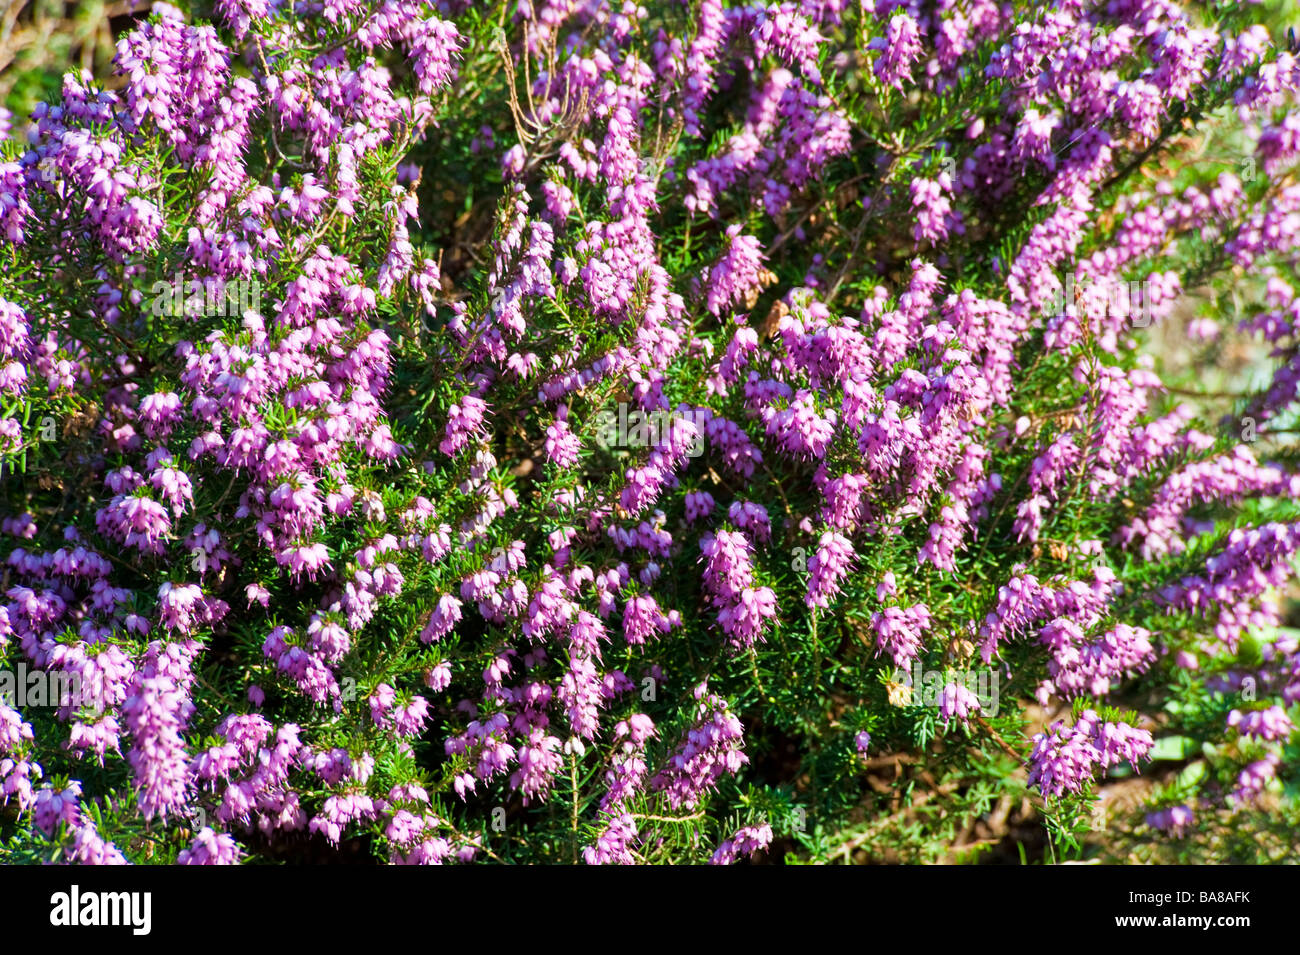 erica plant blooming with pink or purple blossoms. Black Bedroom Furniture Sets. Home Design Ideas